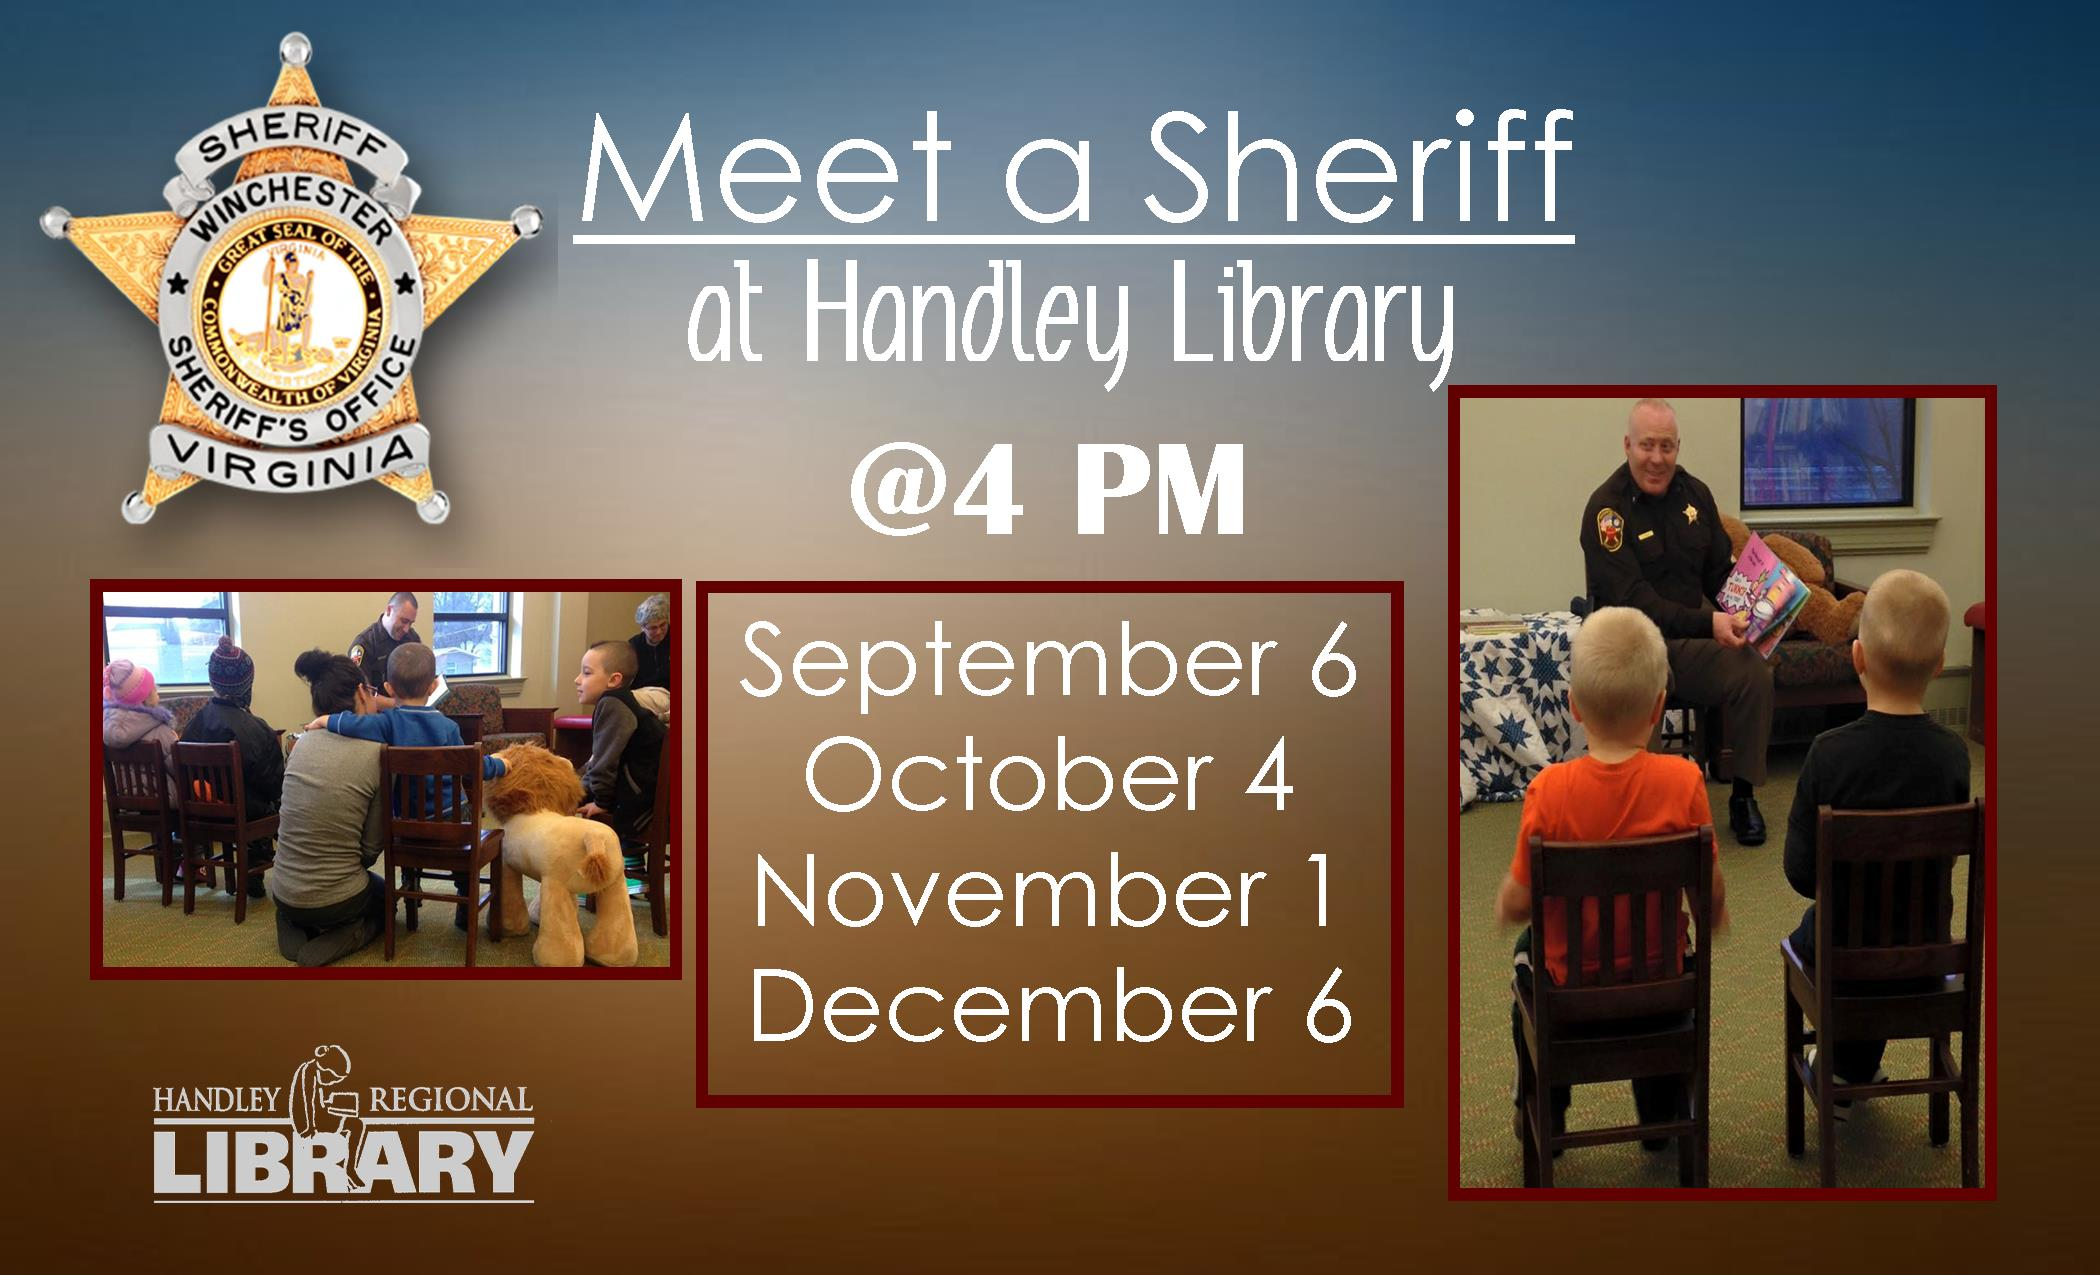 Meet a Sheriff!